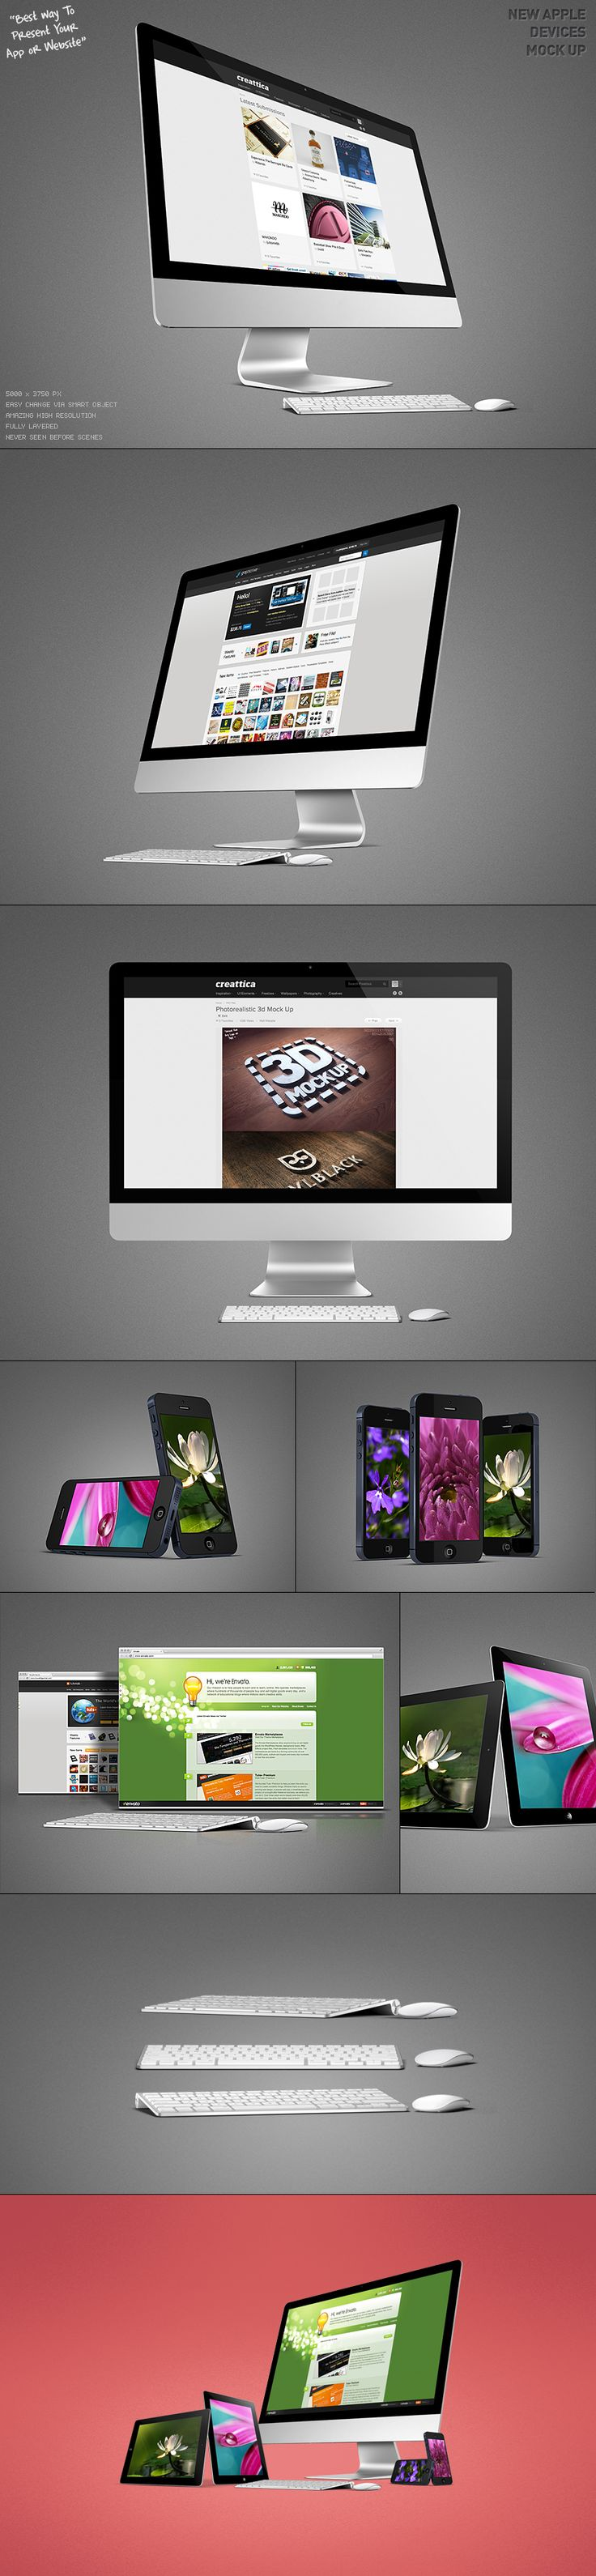 New iMac and iPhone5 Mock UP